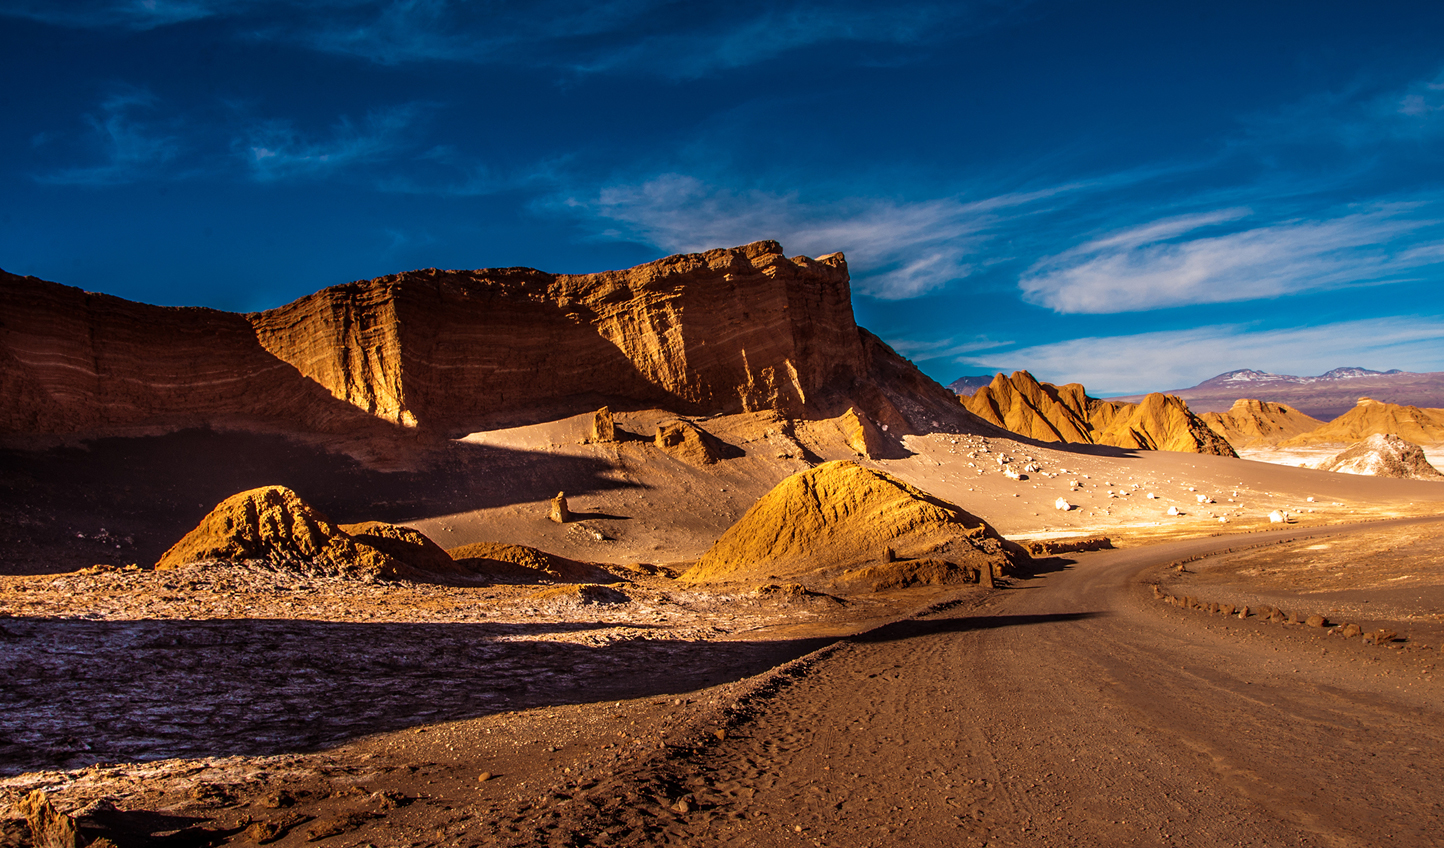 Explore Moon Valley